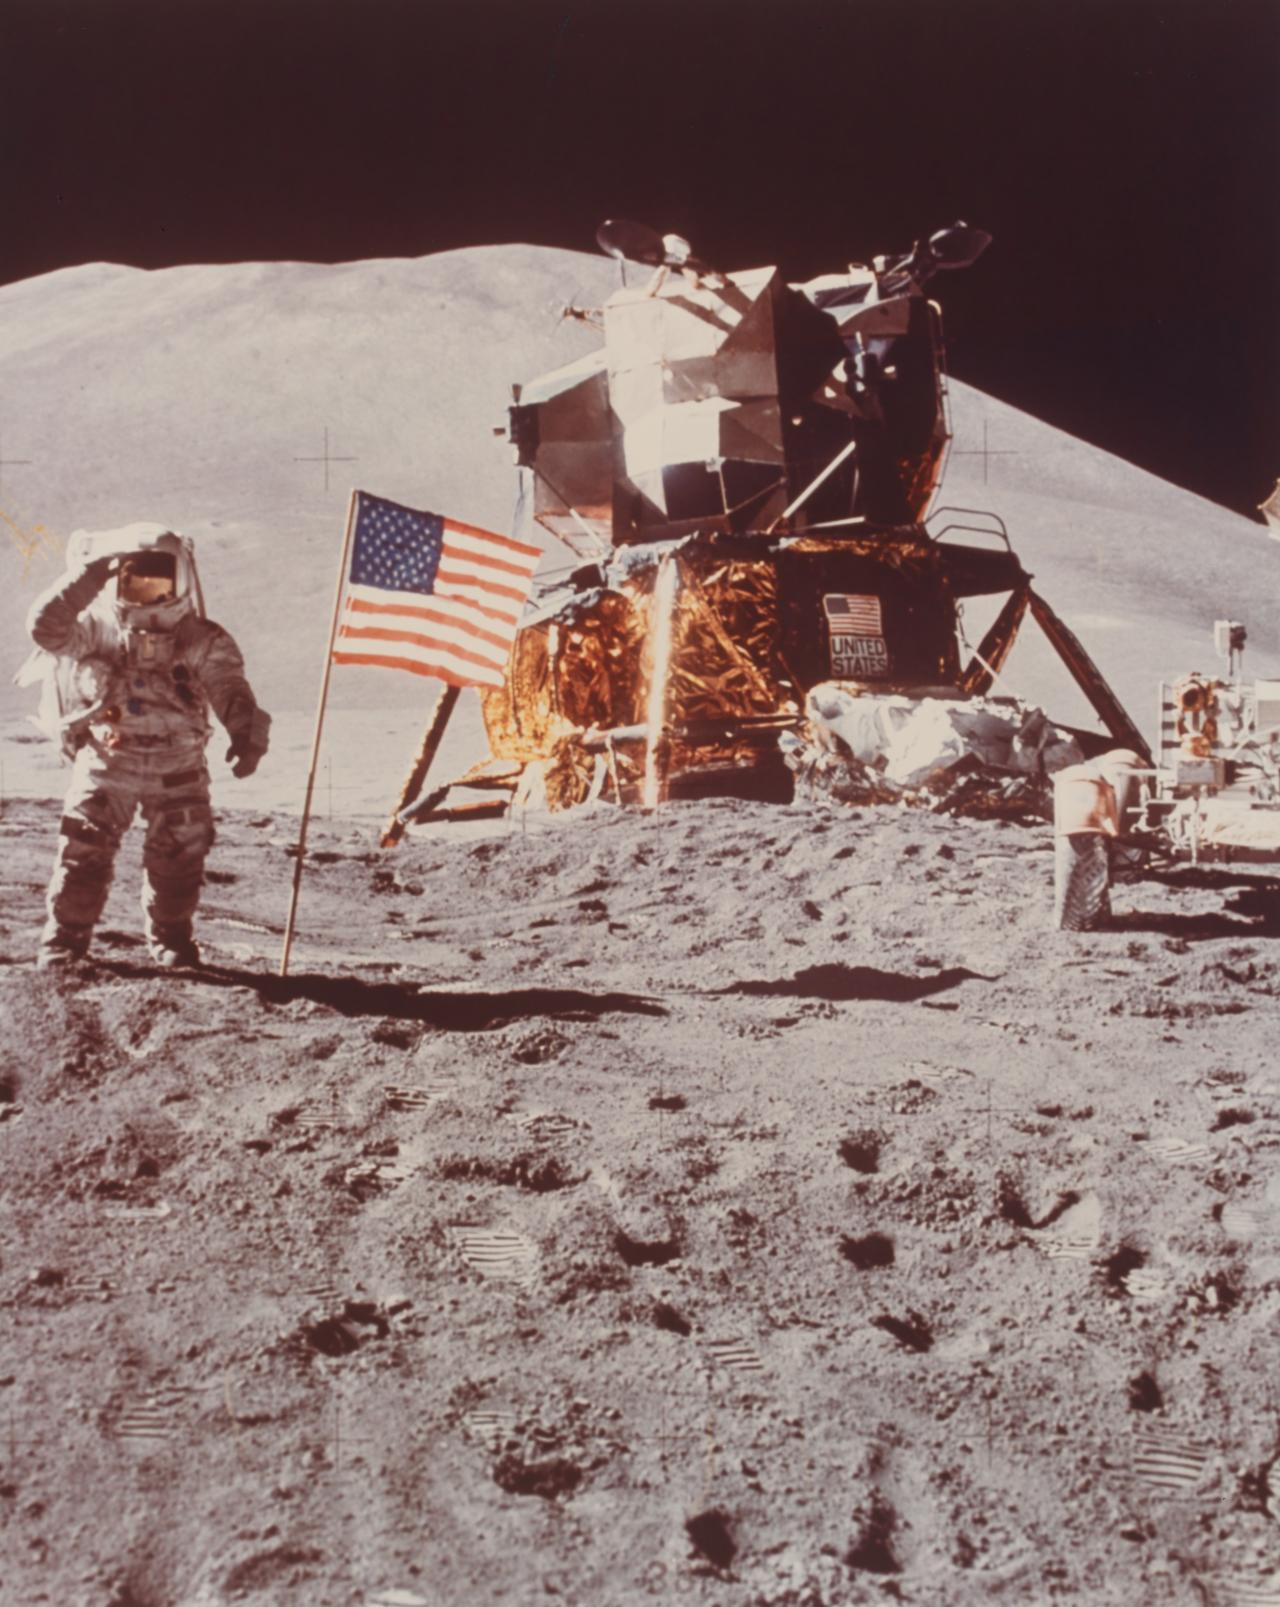 Apollo 15 mission. Astronaut Irwin saluting flag with lunar module, rover and hadley delta in background